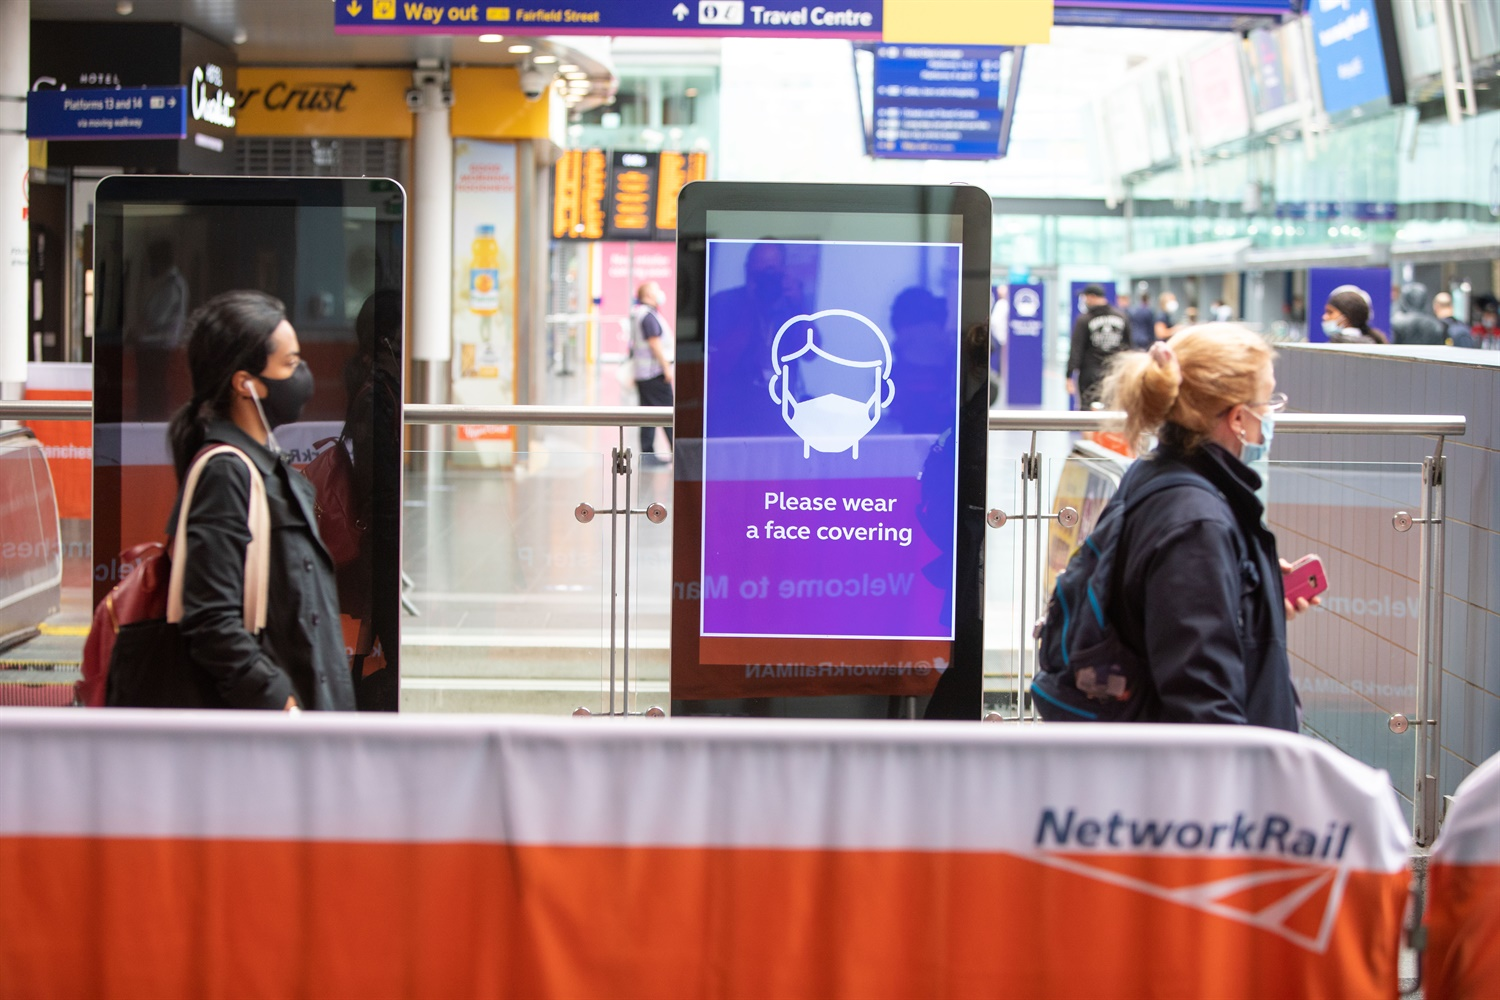 Network Rail introduces further safety measures as more passengers return